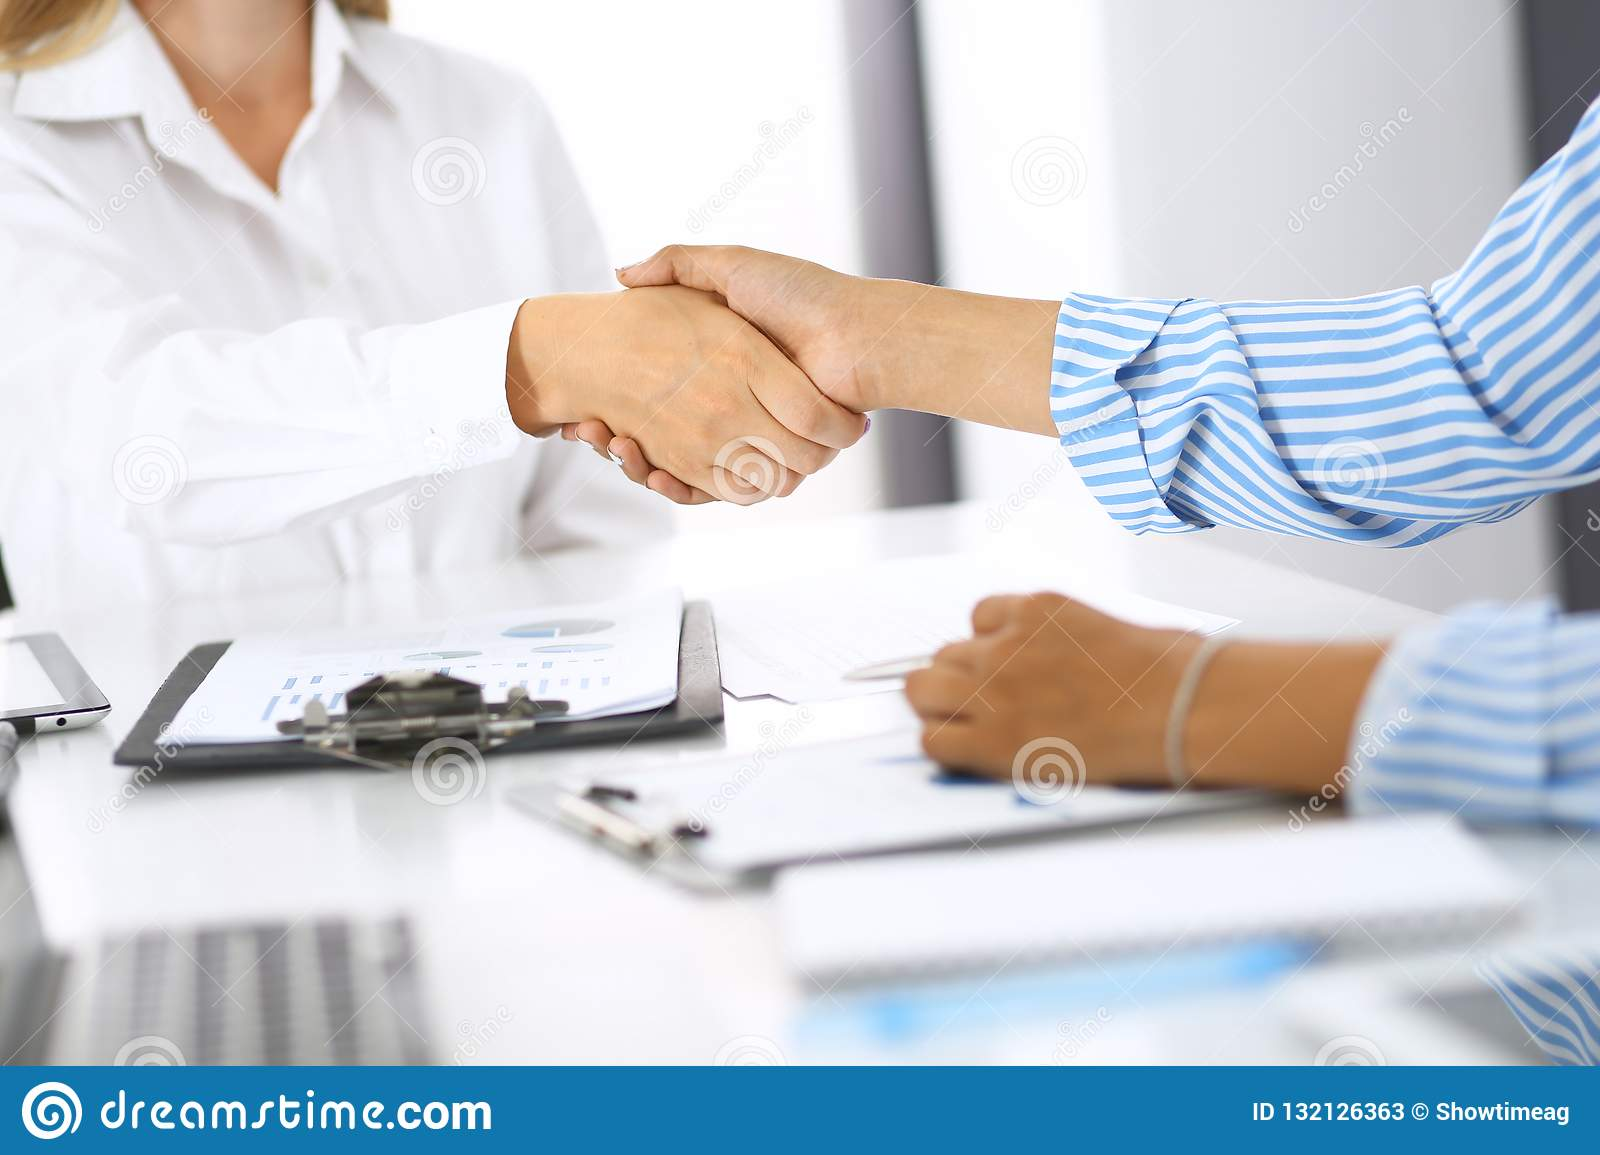 Business handshake at meeting or negotiation in office. Partners shaking hands while satisfied because signing contract